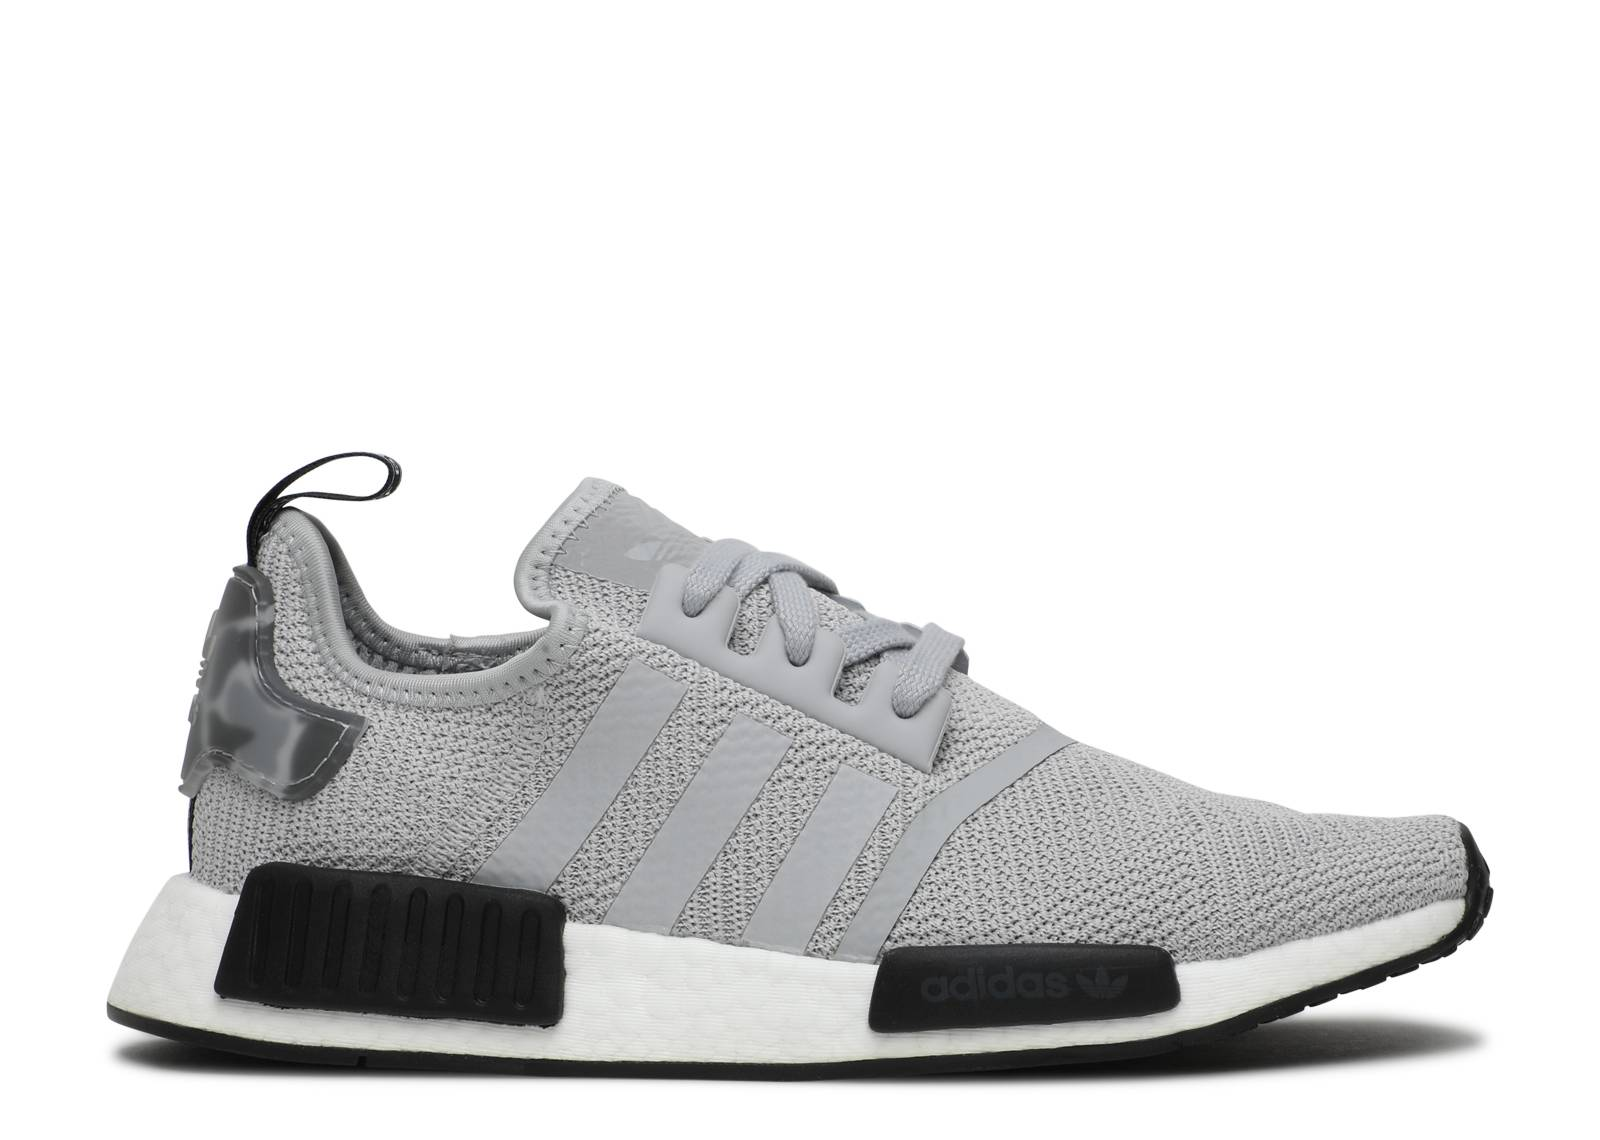 7d0b285dd518 Adidas NMD - adidas Originals Men s   Women s Shoes